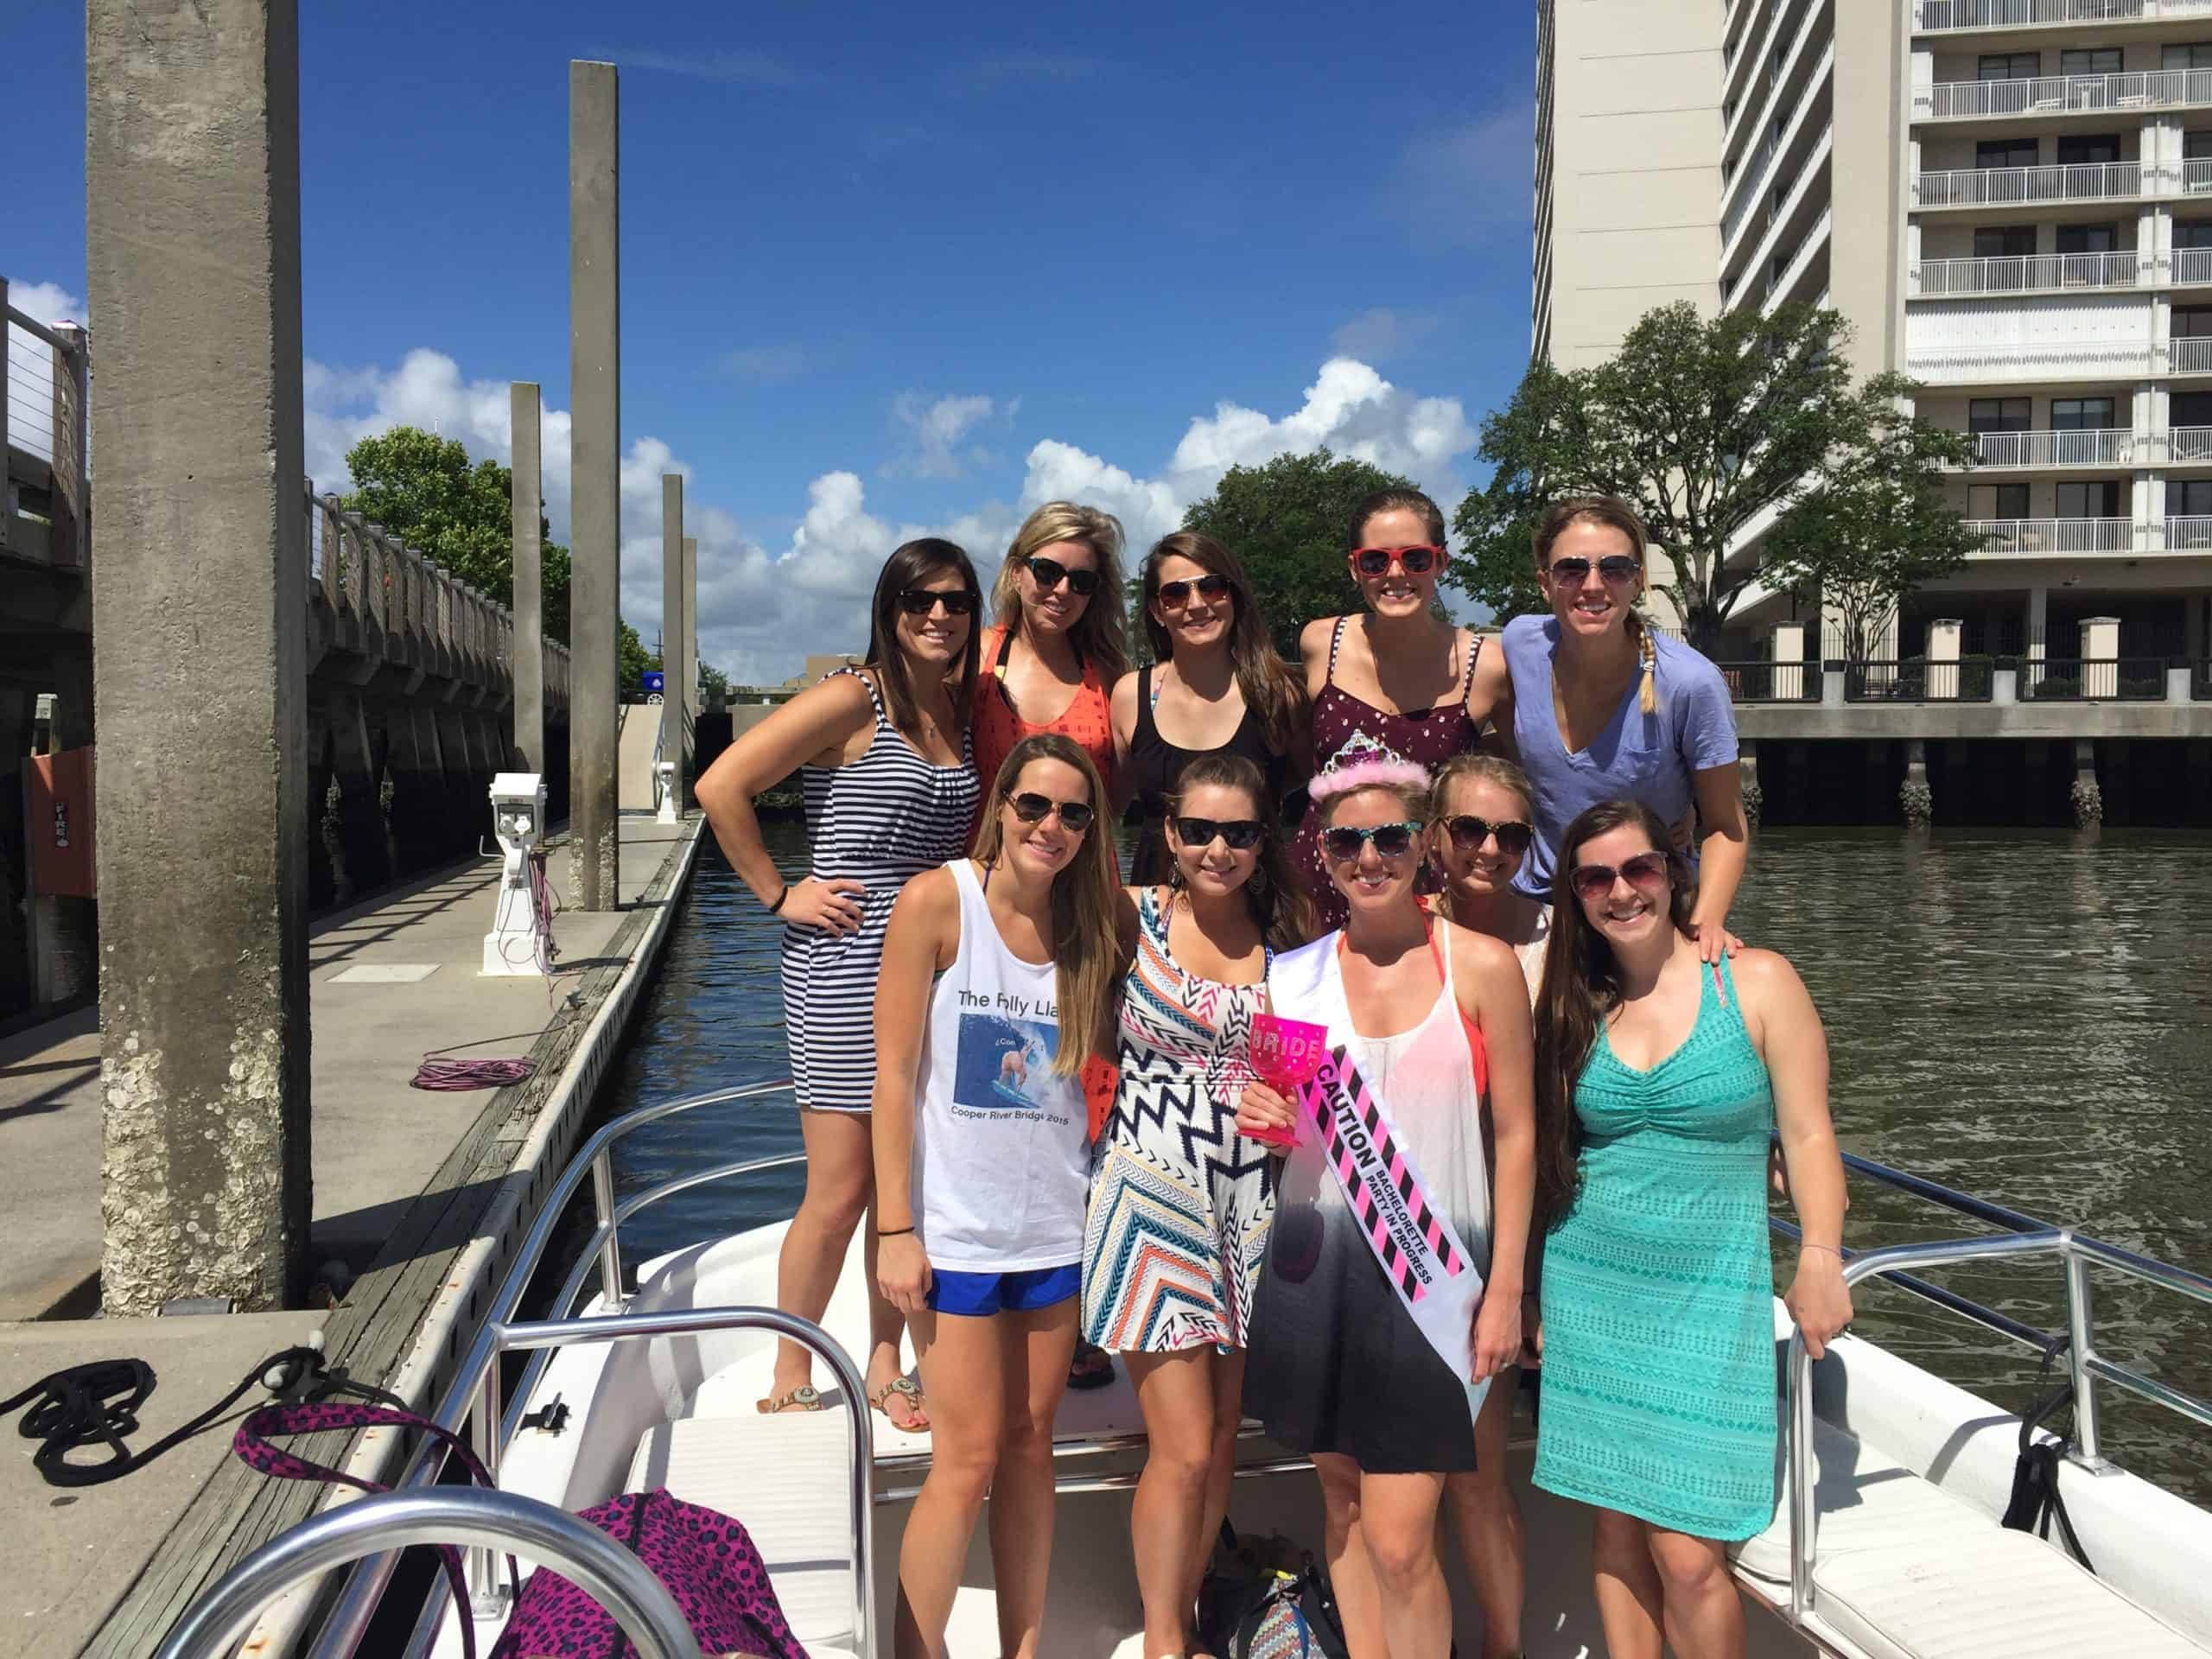 Group of women taking a picture before they go out on their adventure on the boat. Charleston booze cruise bachelorette